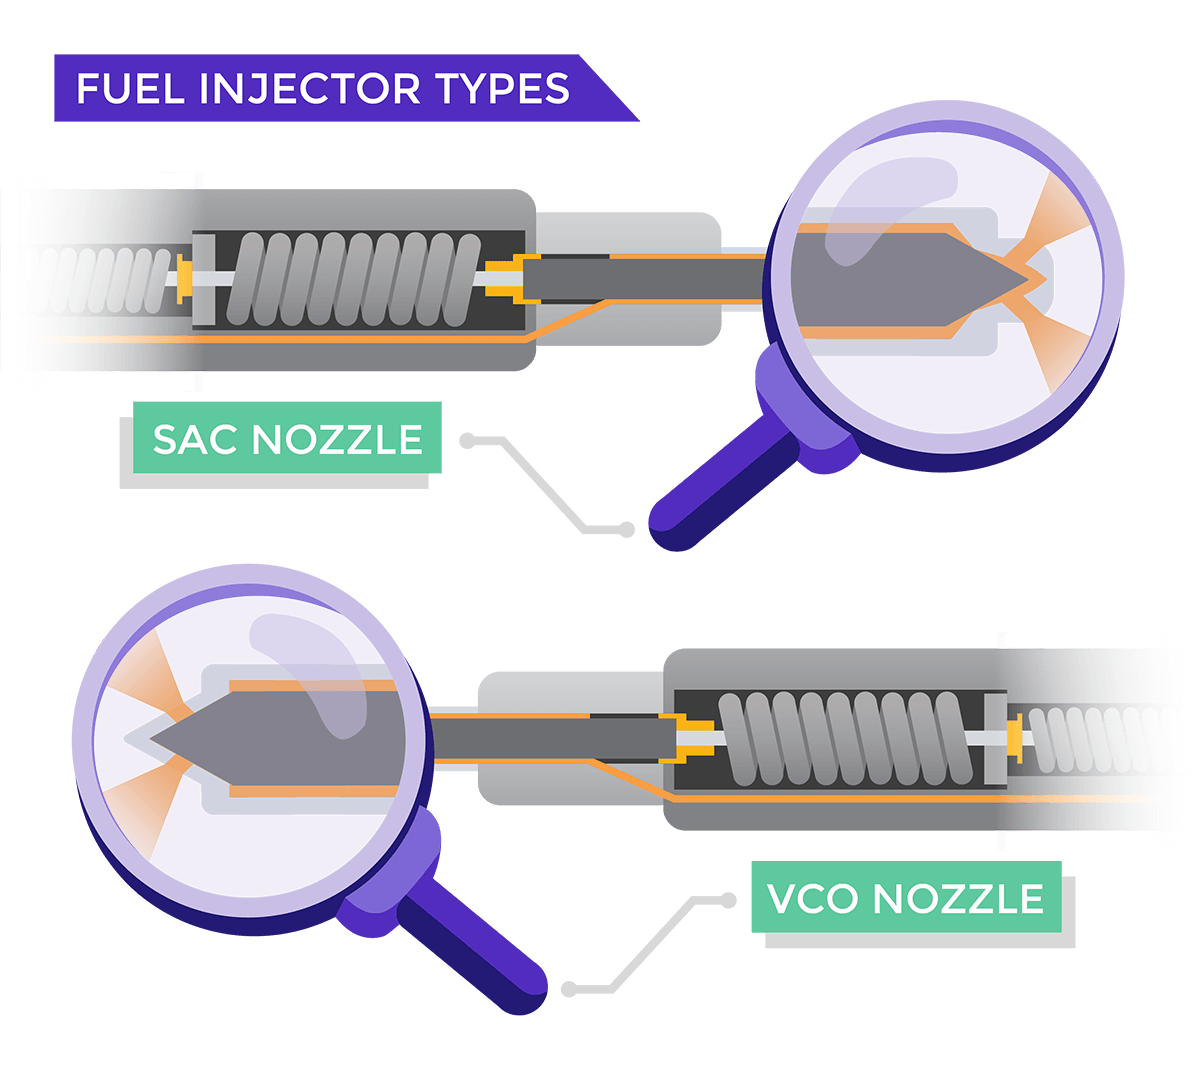 Fuel Injector Types Graphic